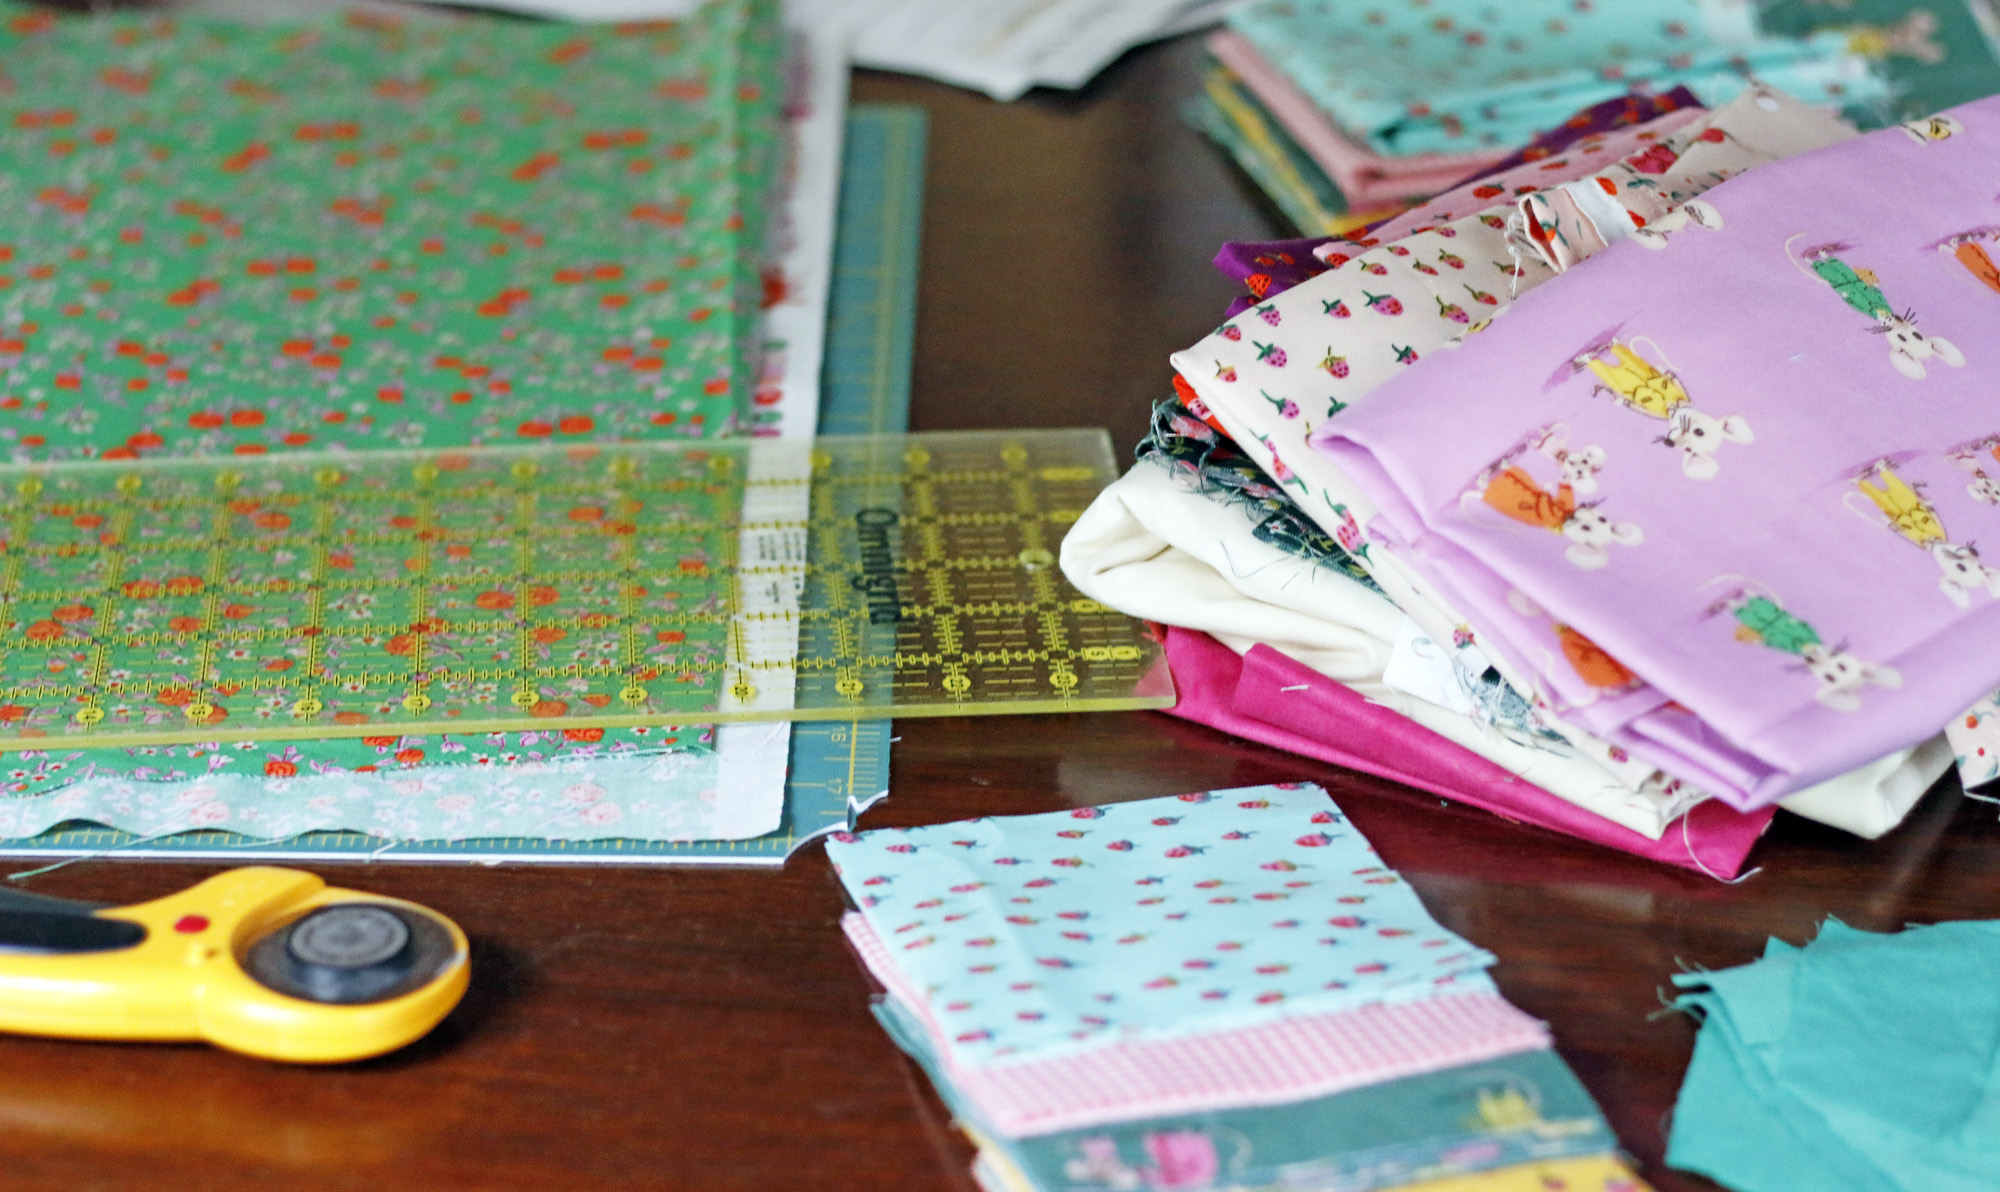 Trixie fabrics cutting. Stitched in Color.jpg